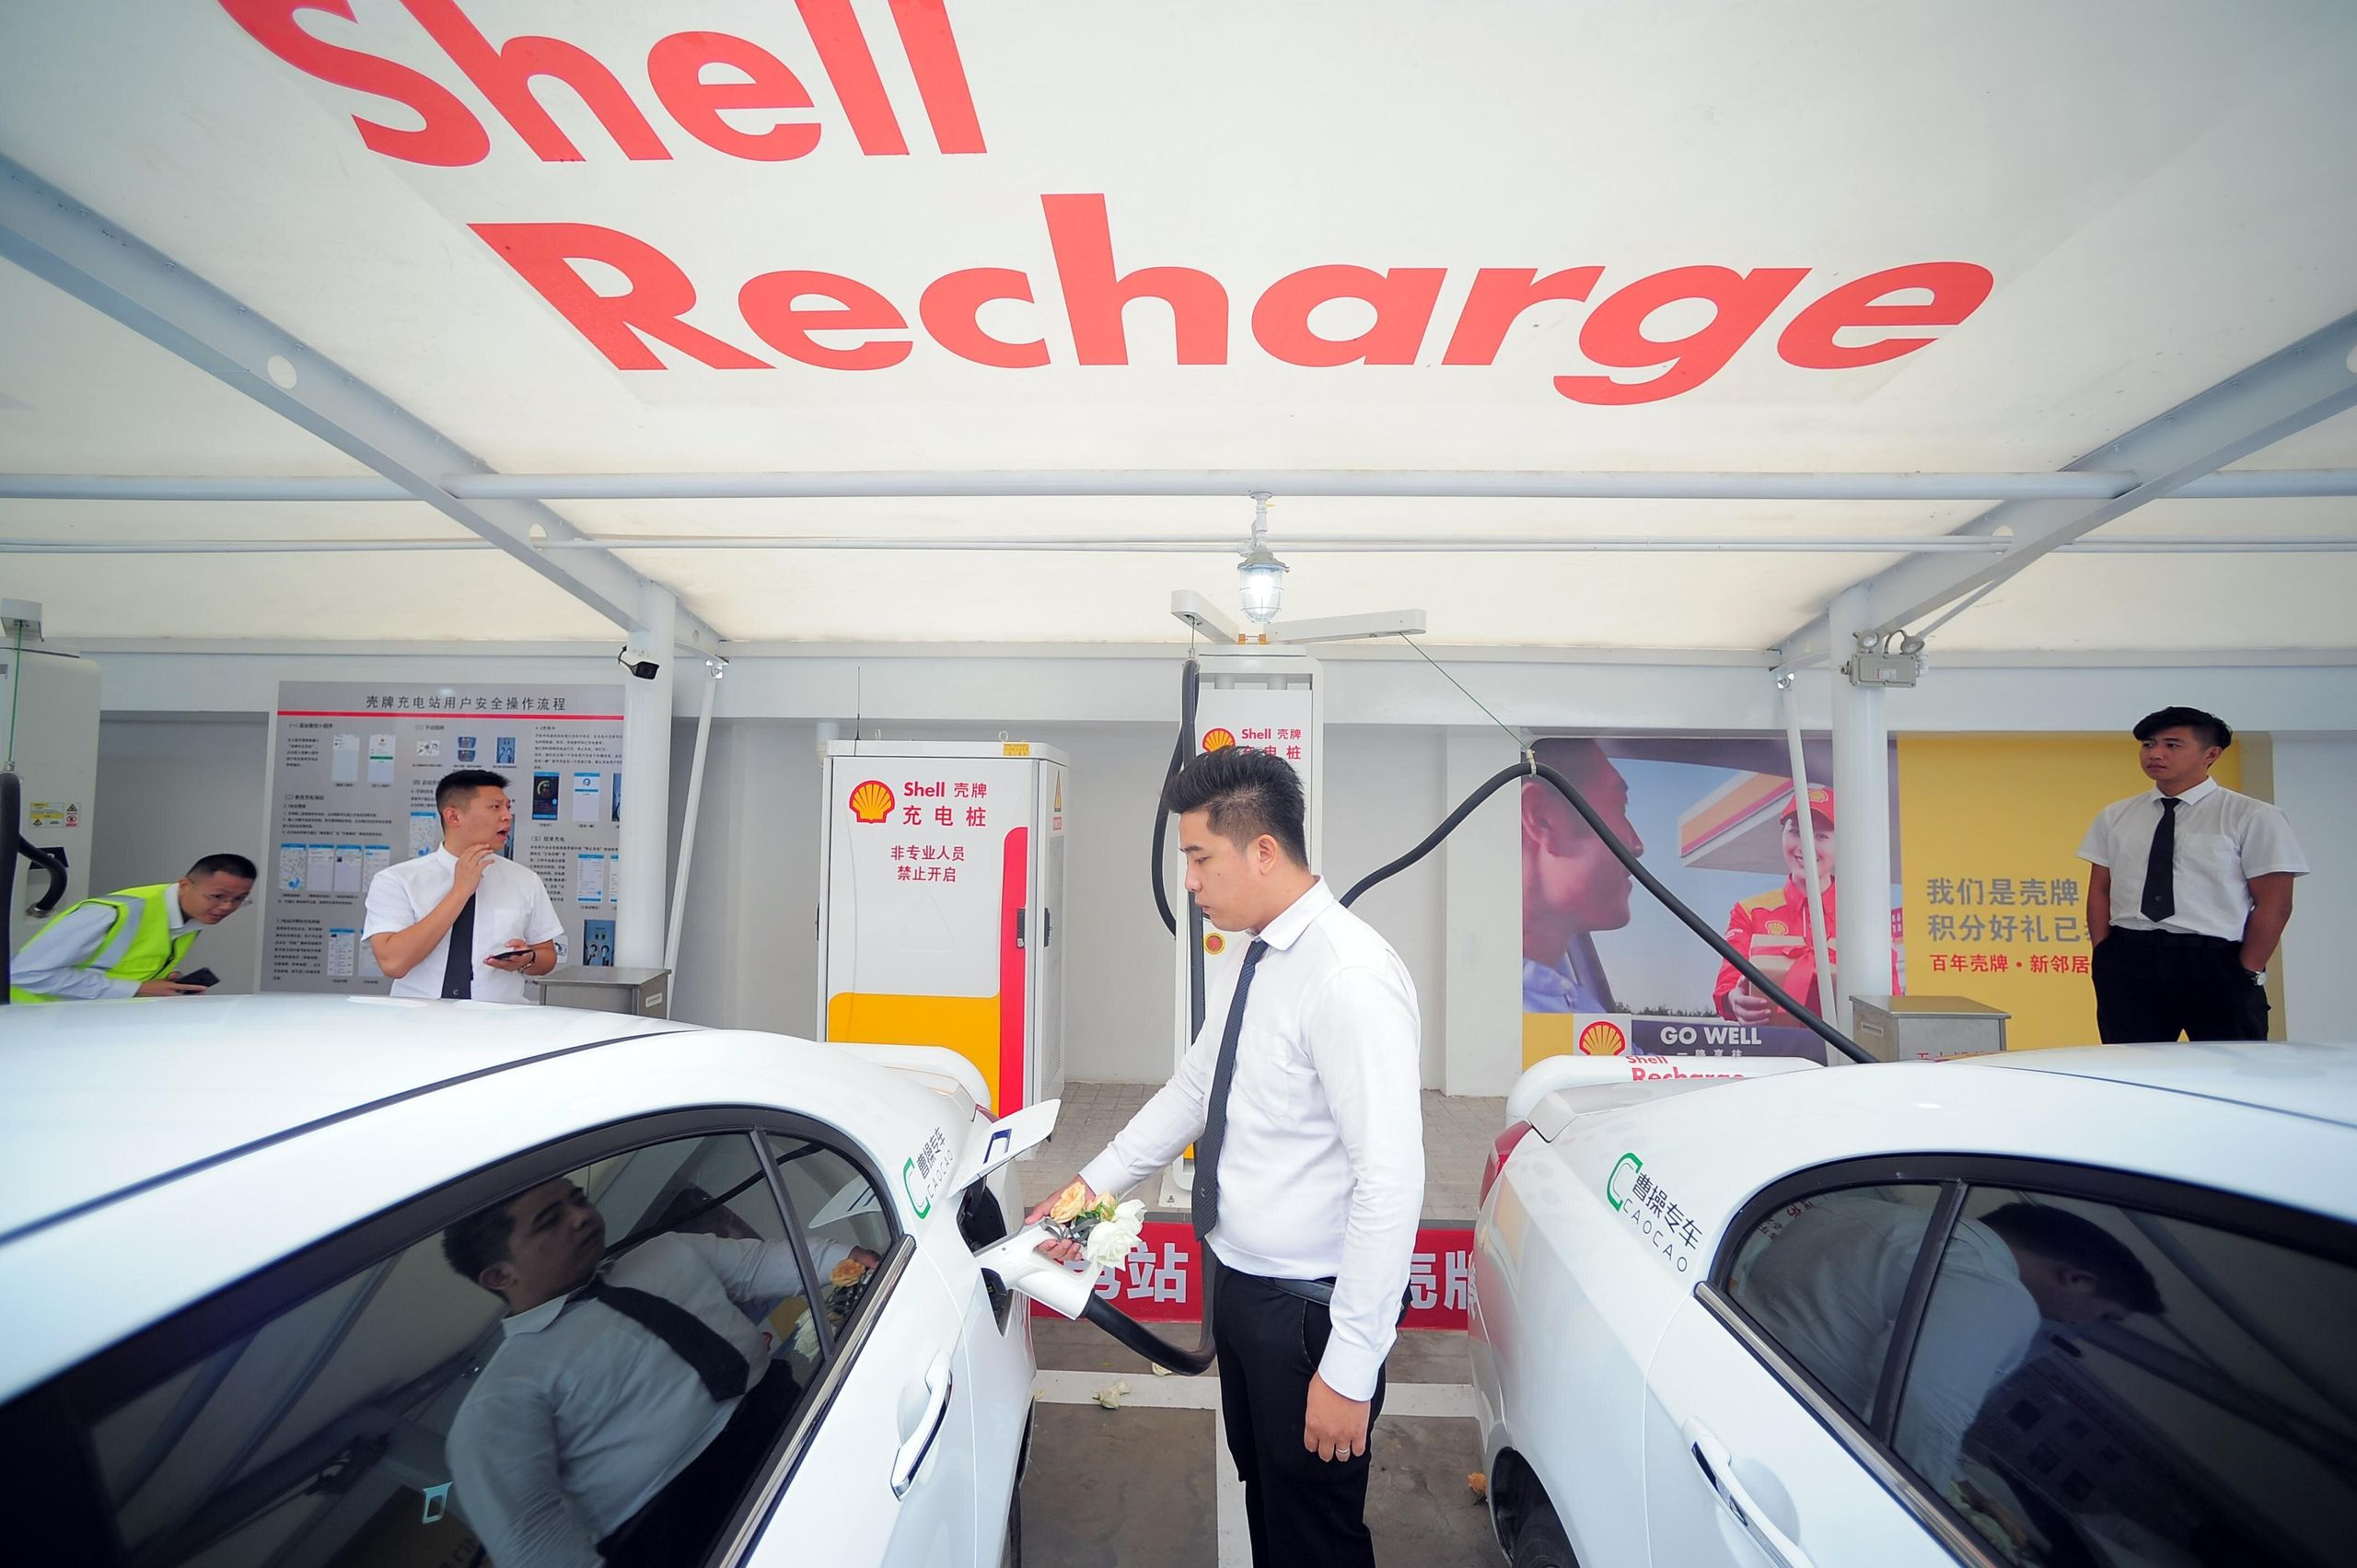 A worker charges an electric car at a Shell charging station on September 28, 2018 in Tianjin, China.